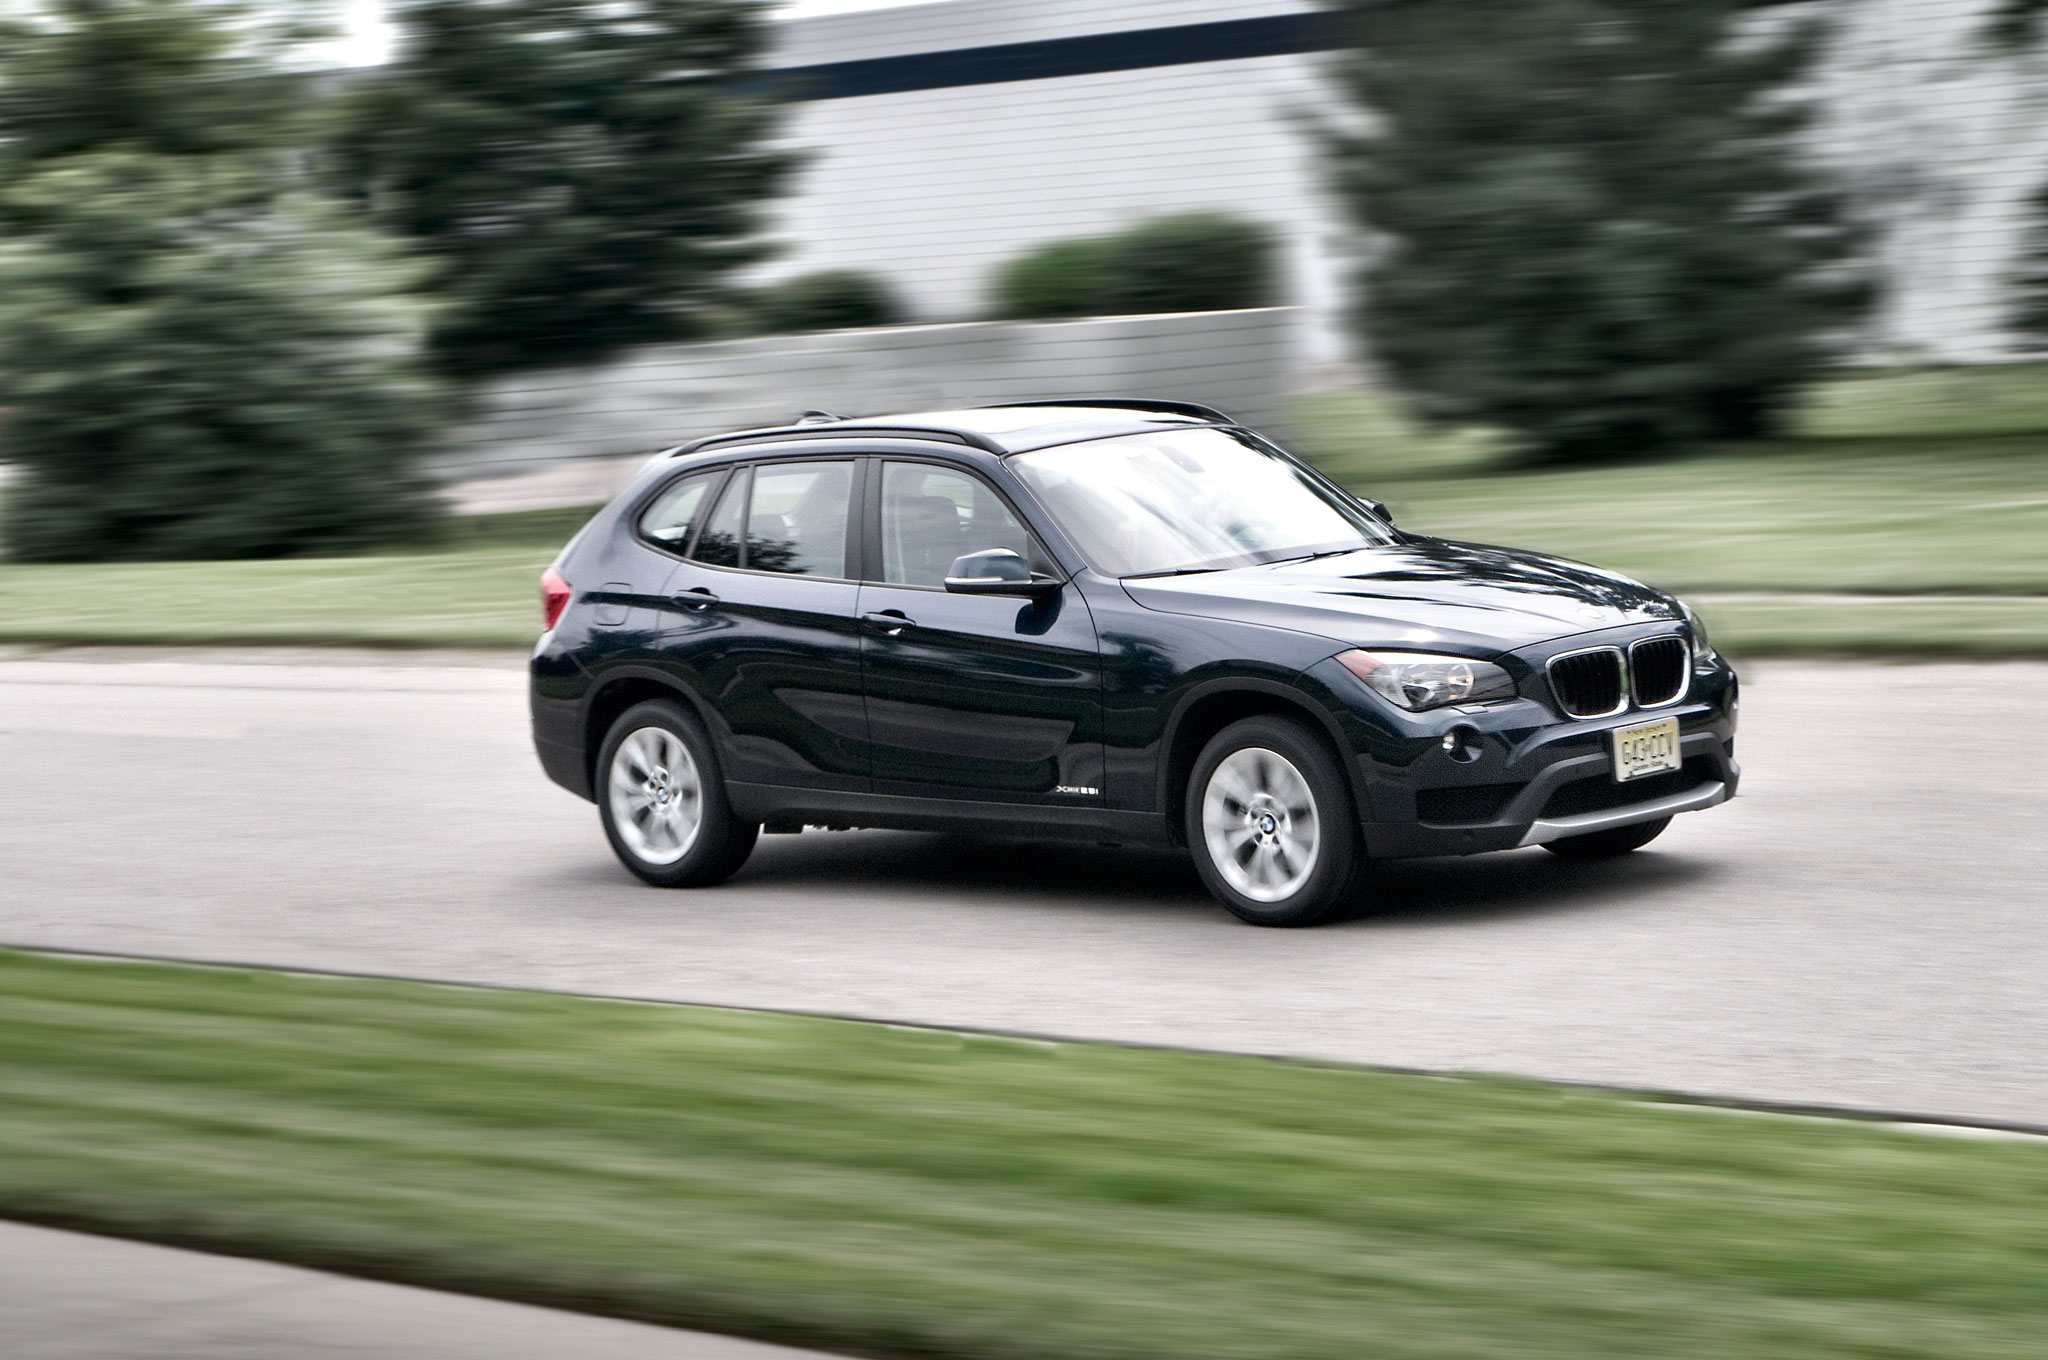 2013 BMW X1 Front Right Side View 21